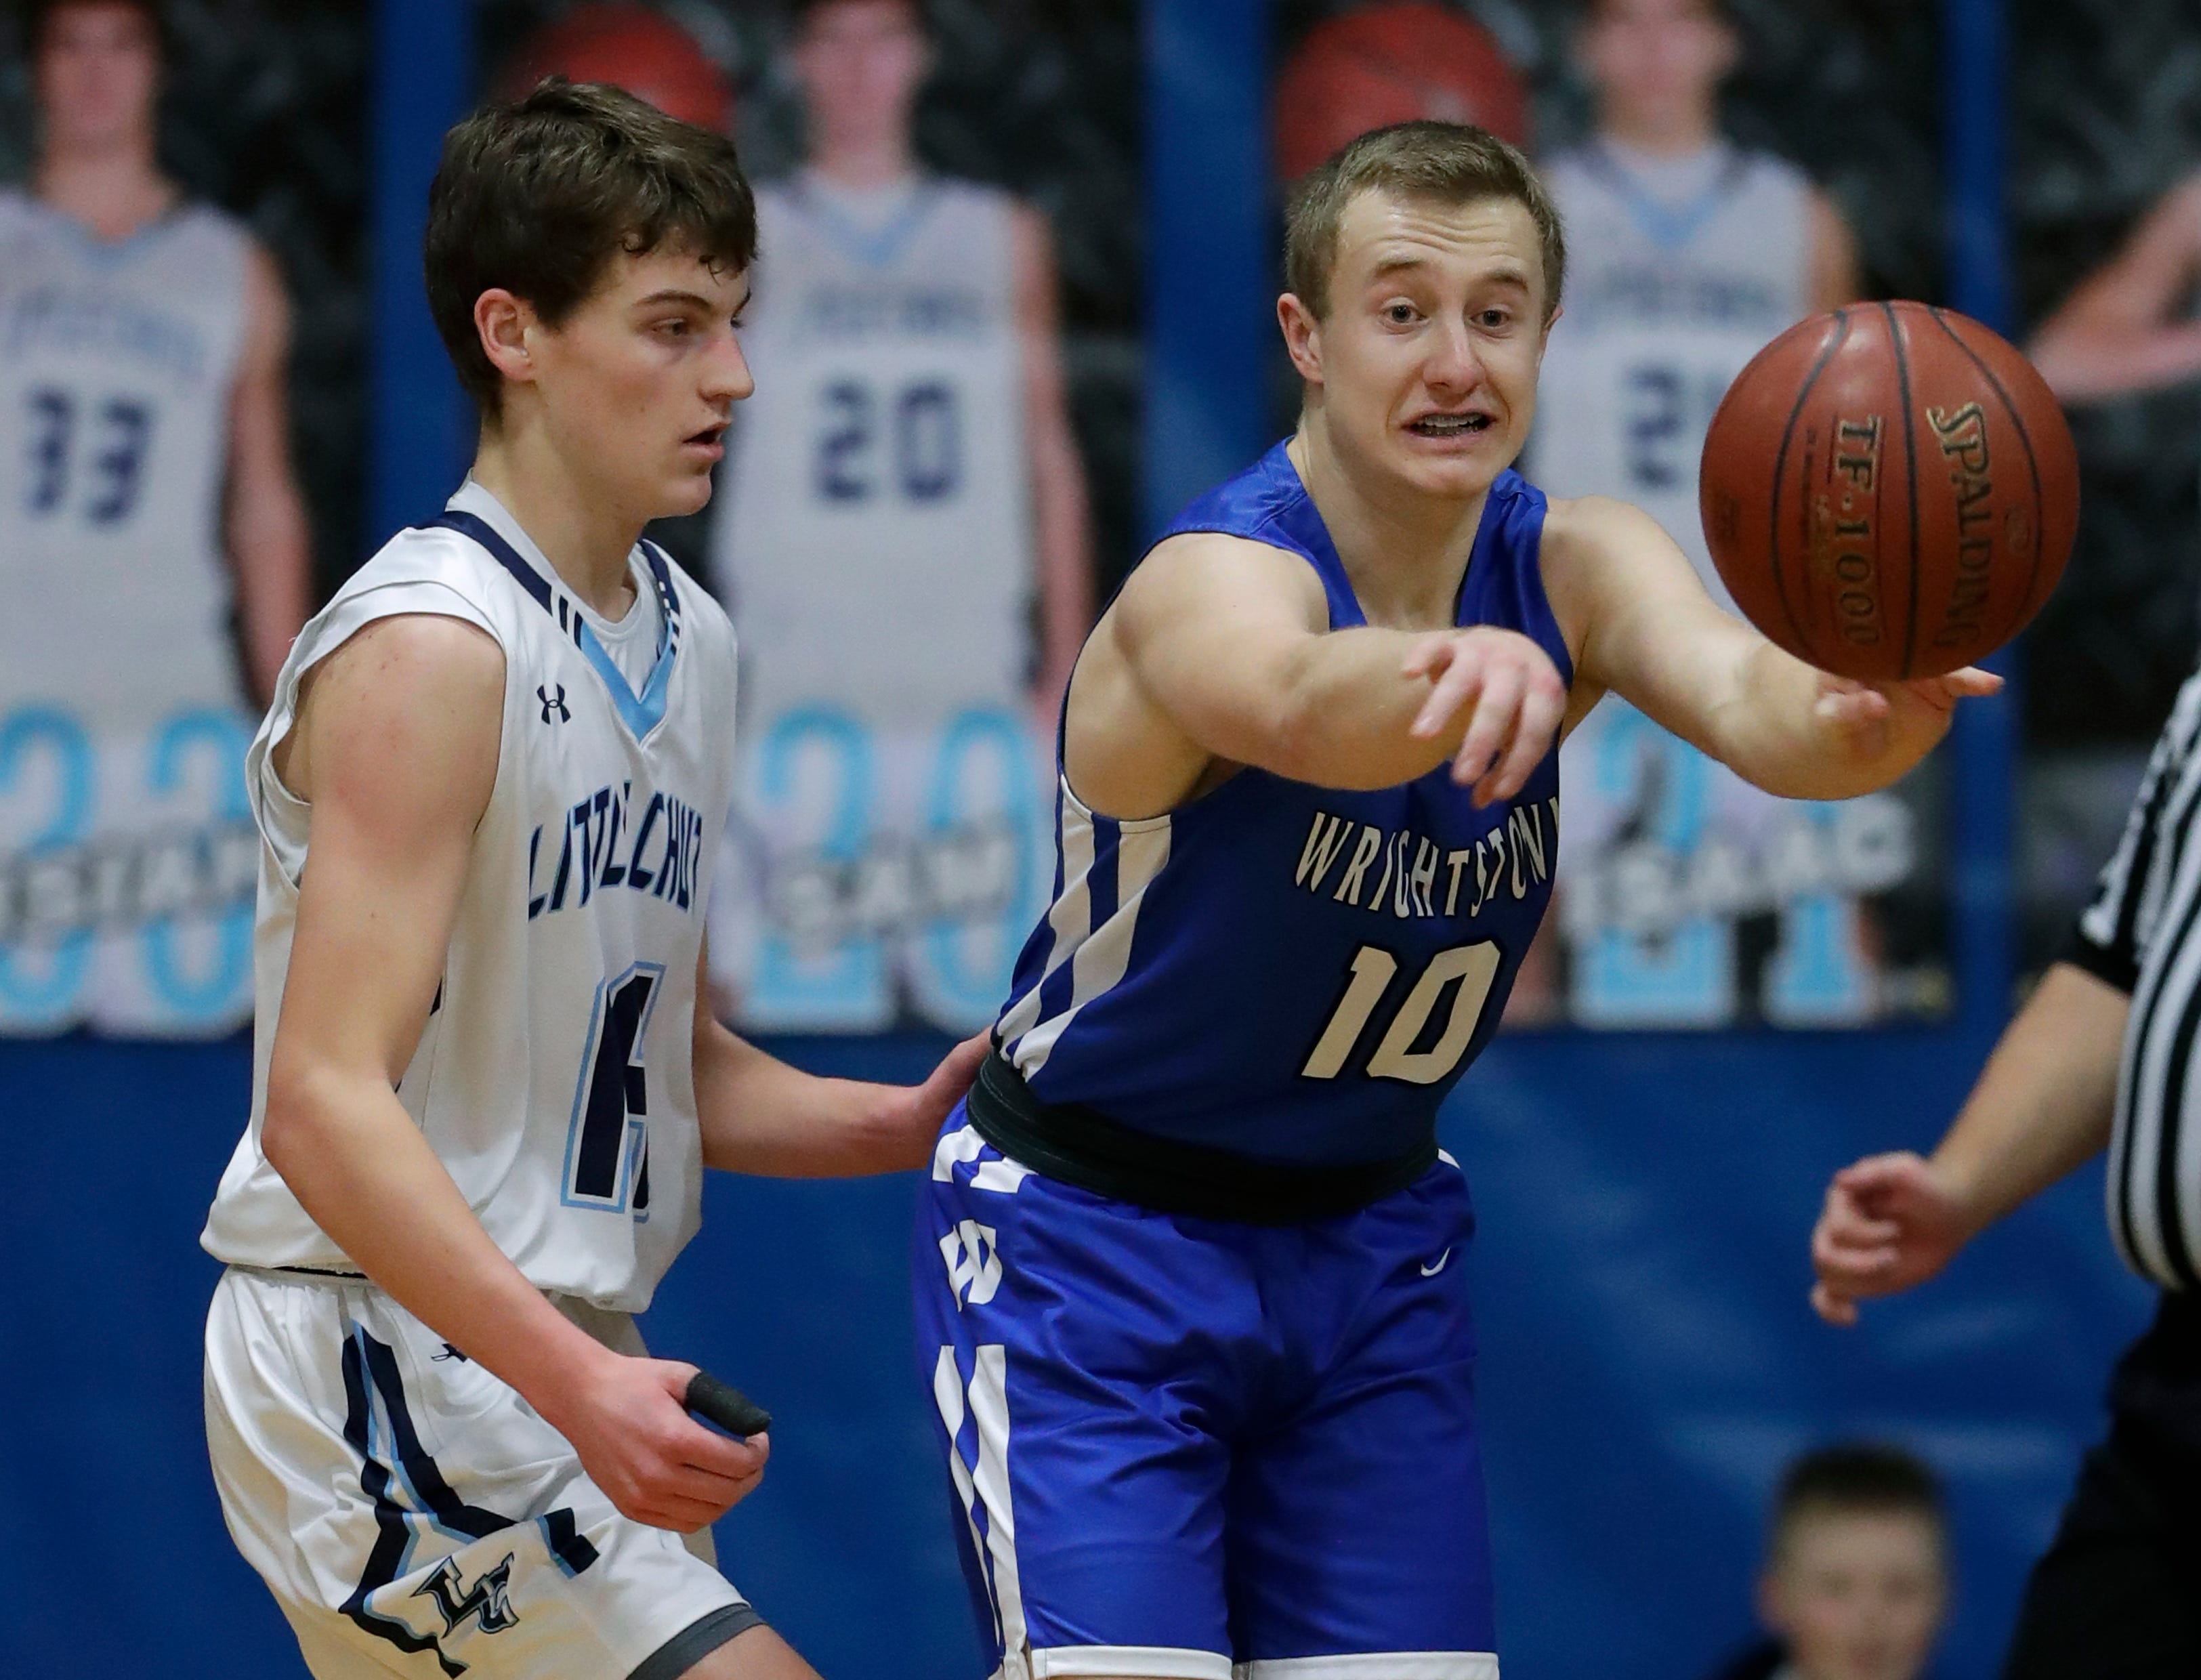 Little Chute High School's Logan Plate (14) defends against Wrightstown High School's Tyler Kroes (10) during their boys basketball game Friday, February 1, 2019, in Little Chute, Wis. 